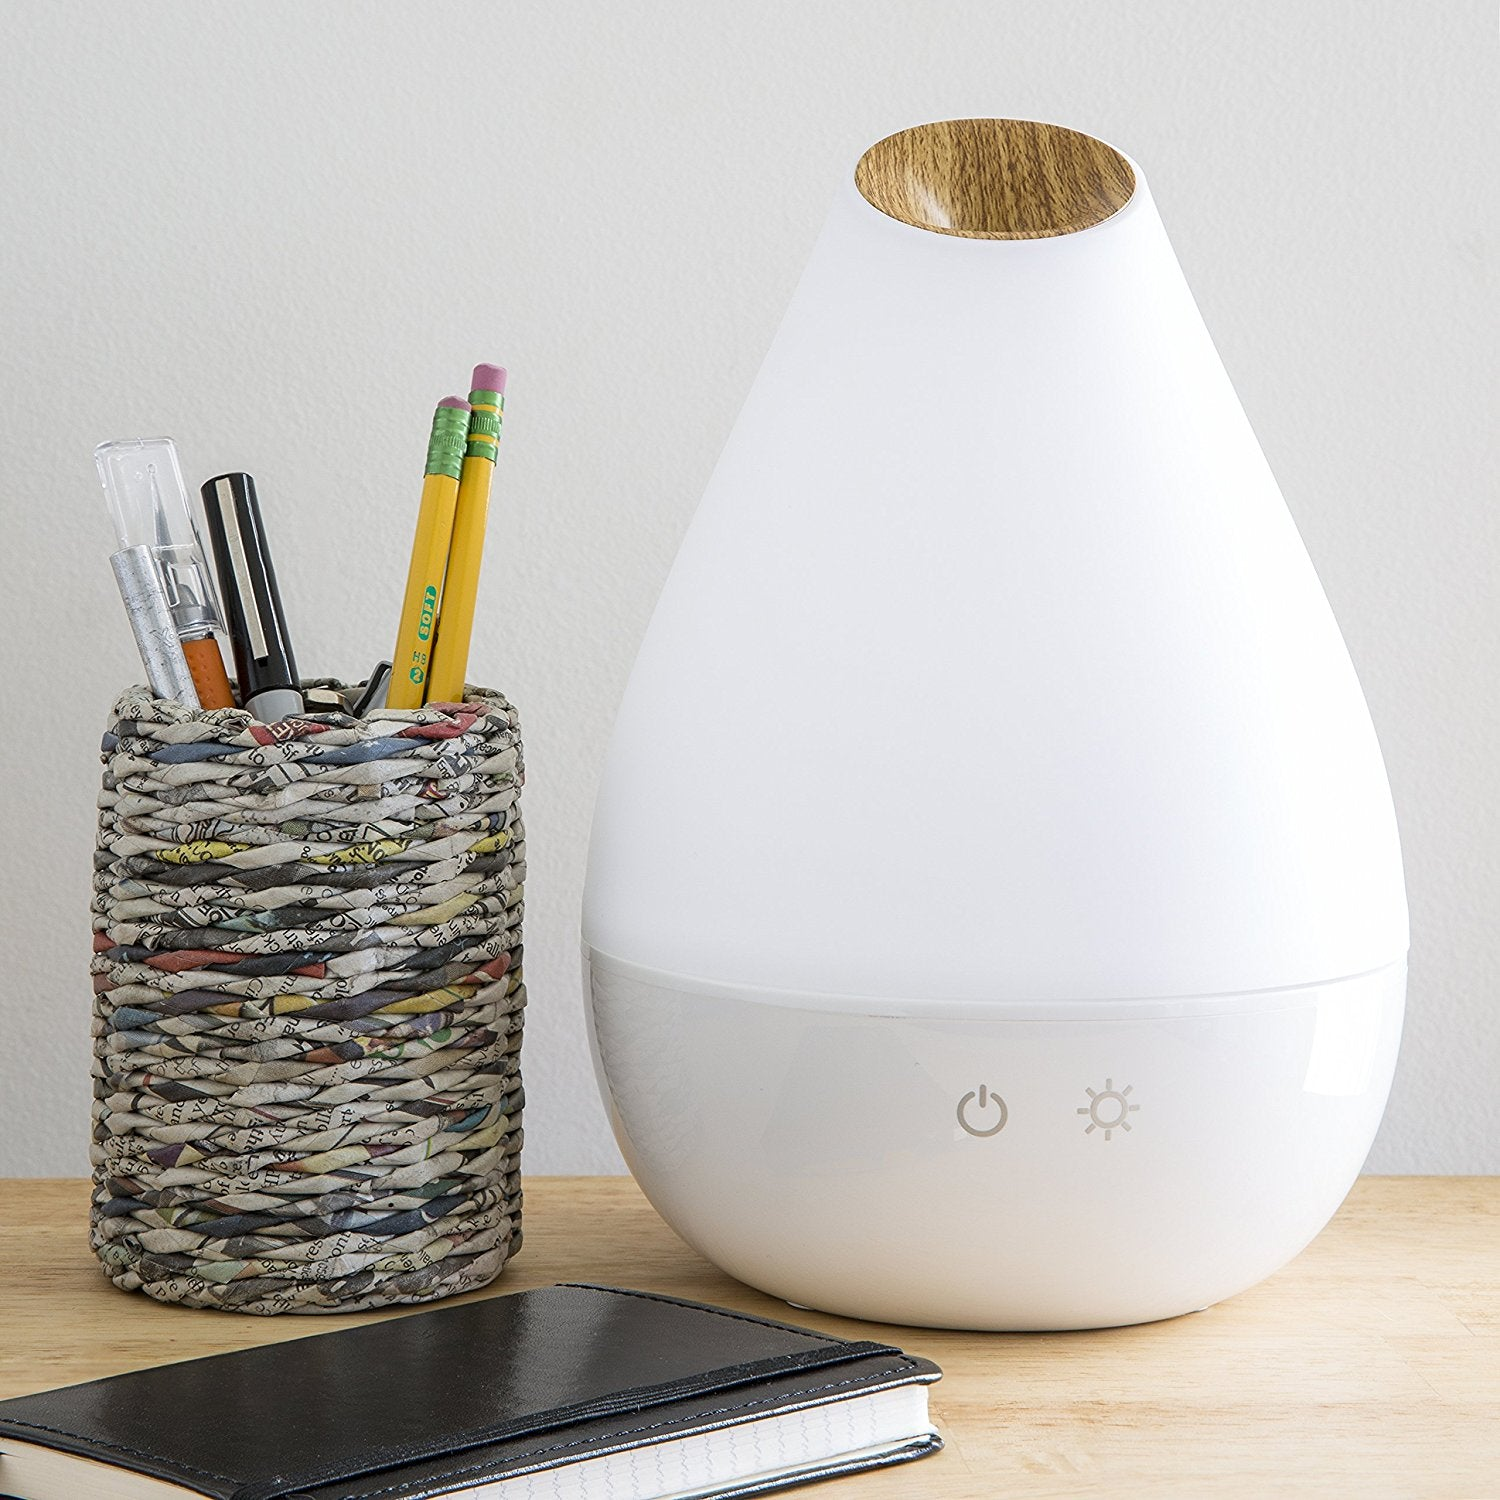 Dew Drop Humidifierdiffuser Amour Naturals